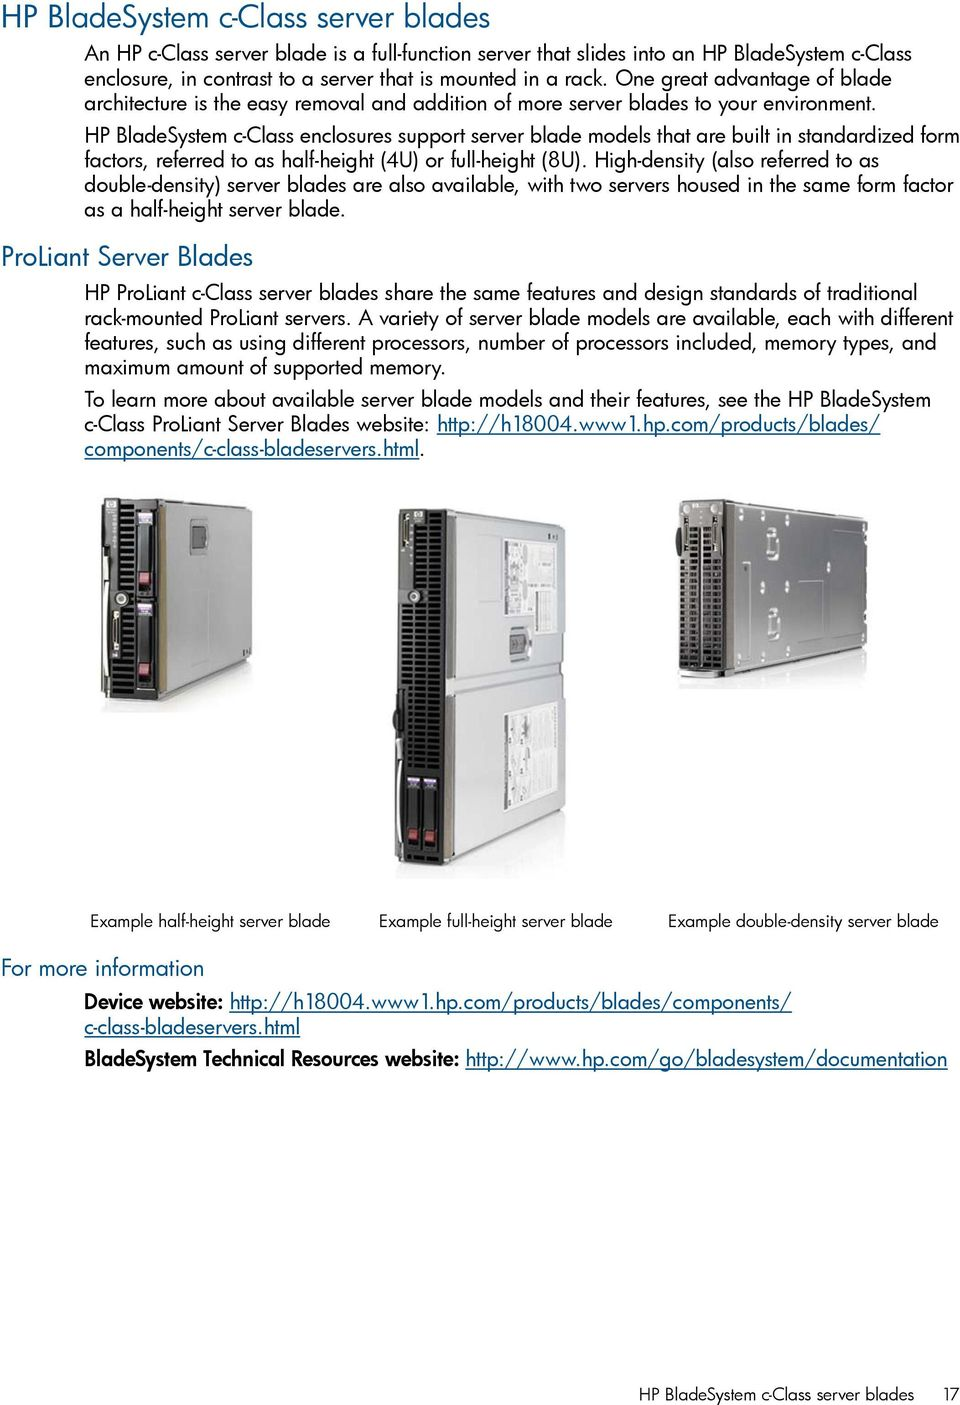 HP BladeSystem c-class enclosures support server blade models that are built in standardized form factors, referred to as half-height (4U) or full-height (8U).